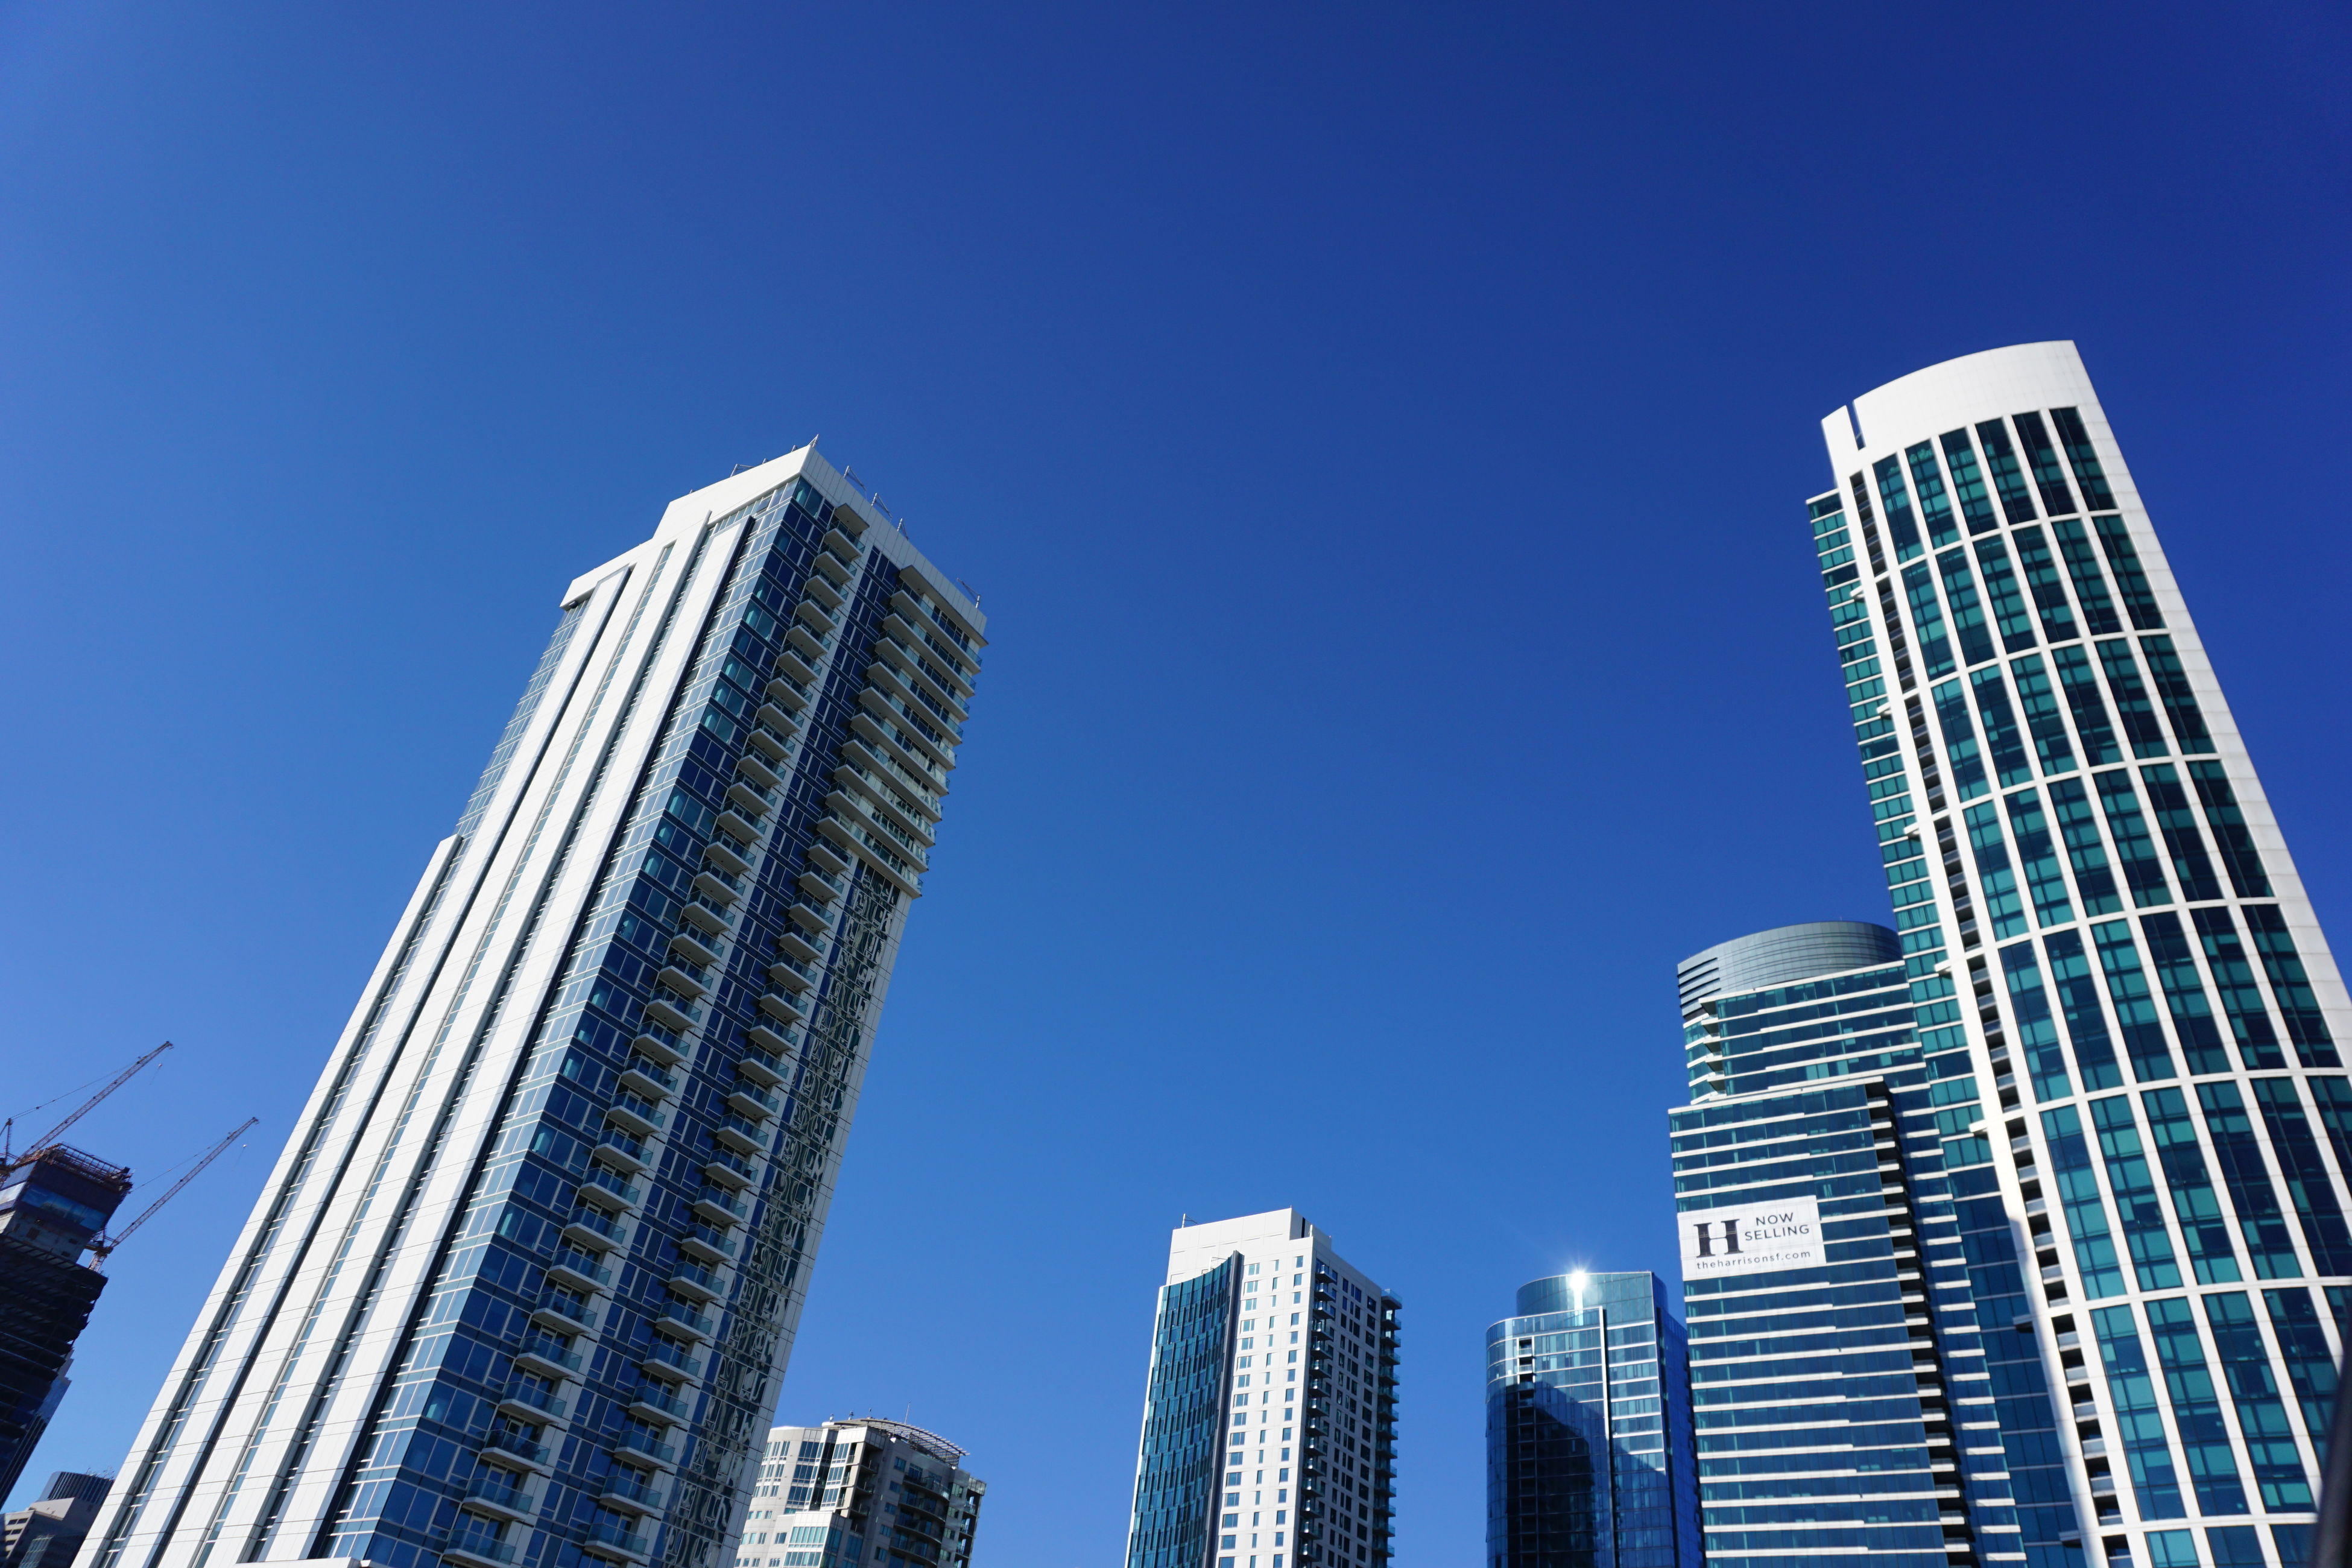 skyscraper, architecture, low angle view, building exterior, tall - high, built structure, modern, city, clear sky, office building, tower, blue, tall, development, financial district, day, outdoors, downtown district, no people, travel destinations, growth, urban skyline, sky, office park